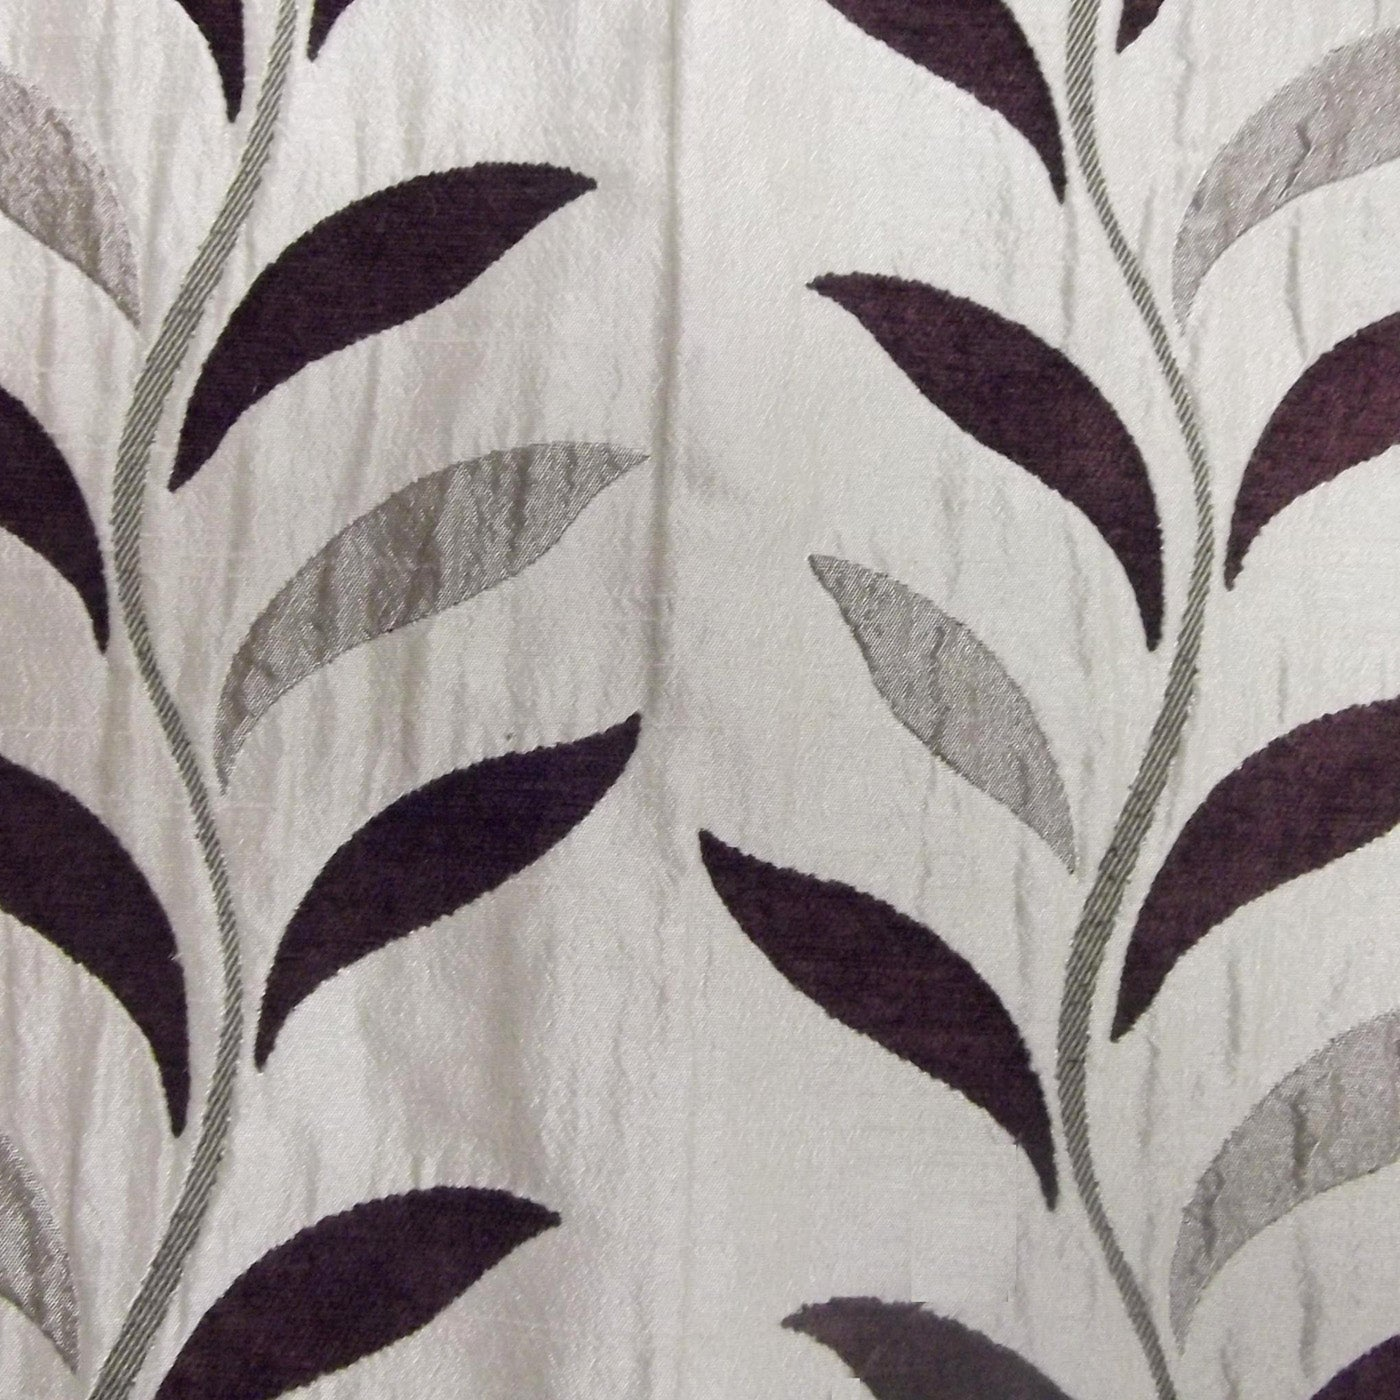 Lucielle chenille fabric dunelm for Space fabric dunelm